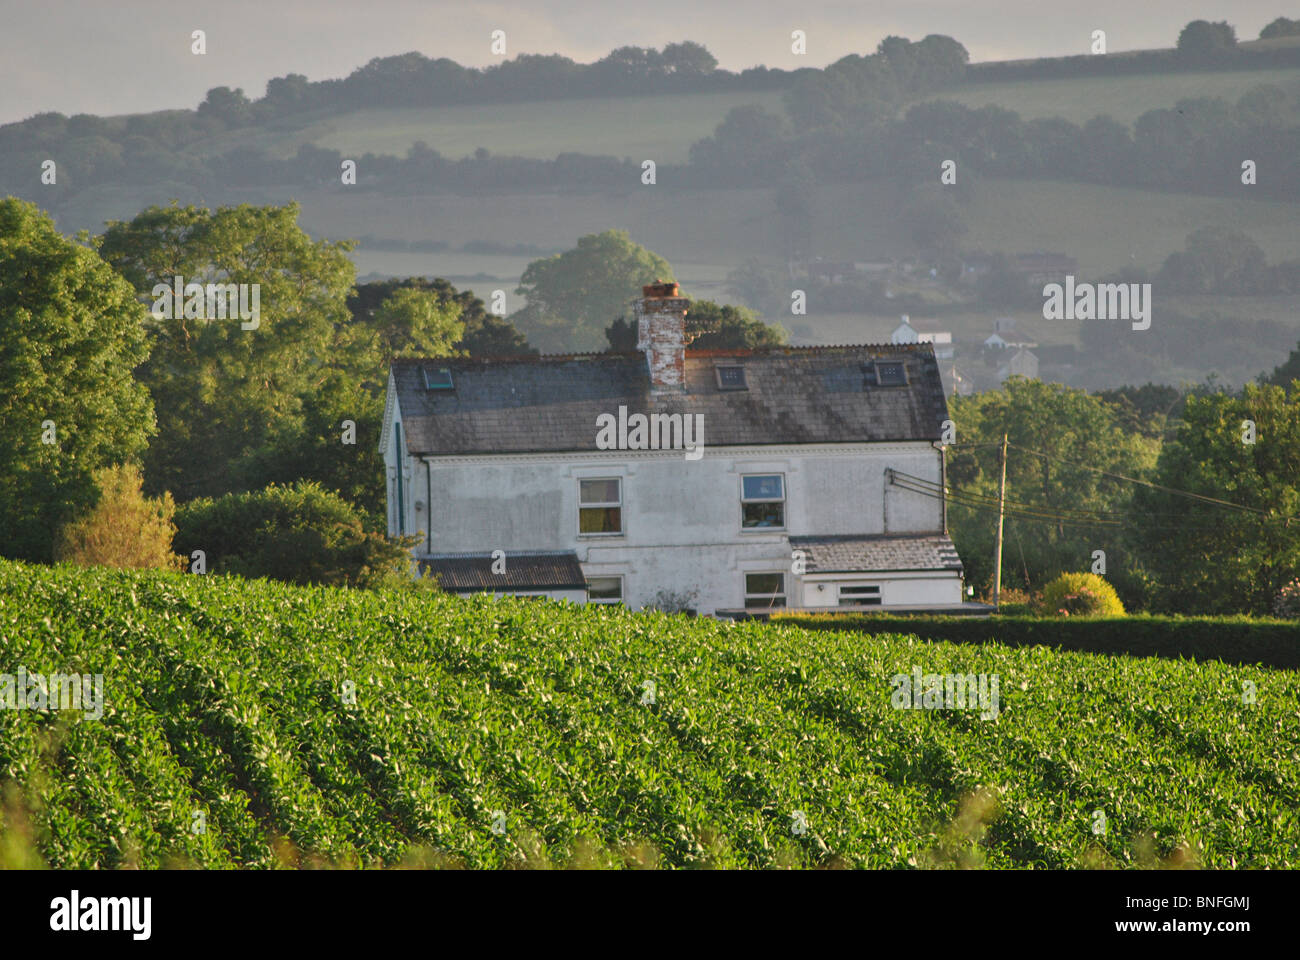 A secluded farmhouse cottage in the Marshwood Vale, Dorset, England - Stock Image